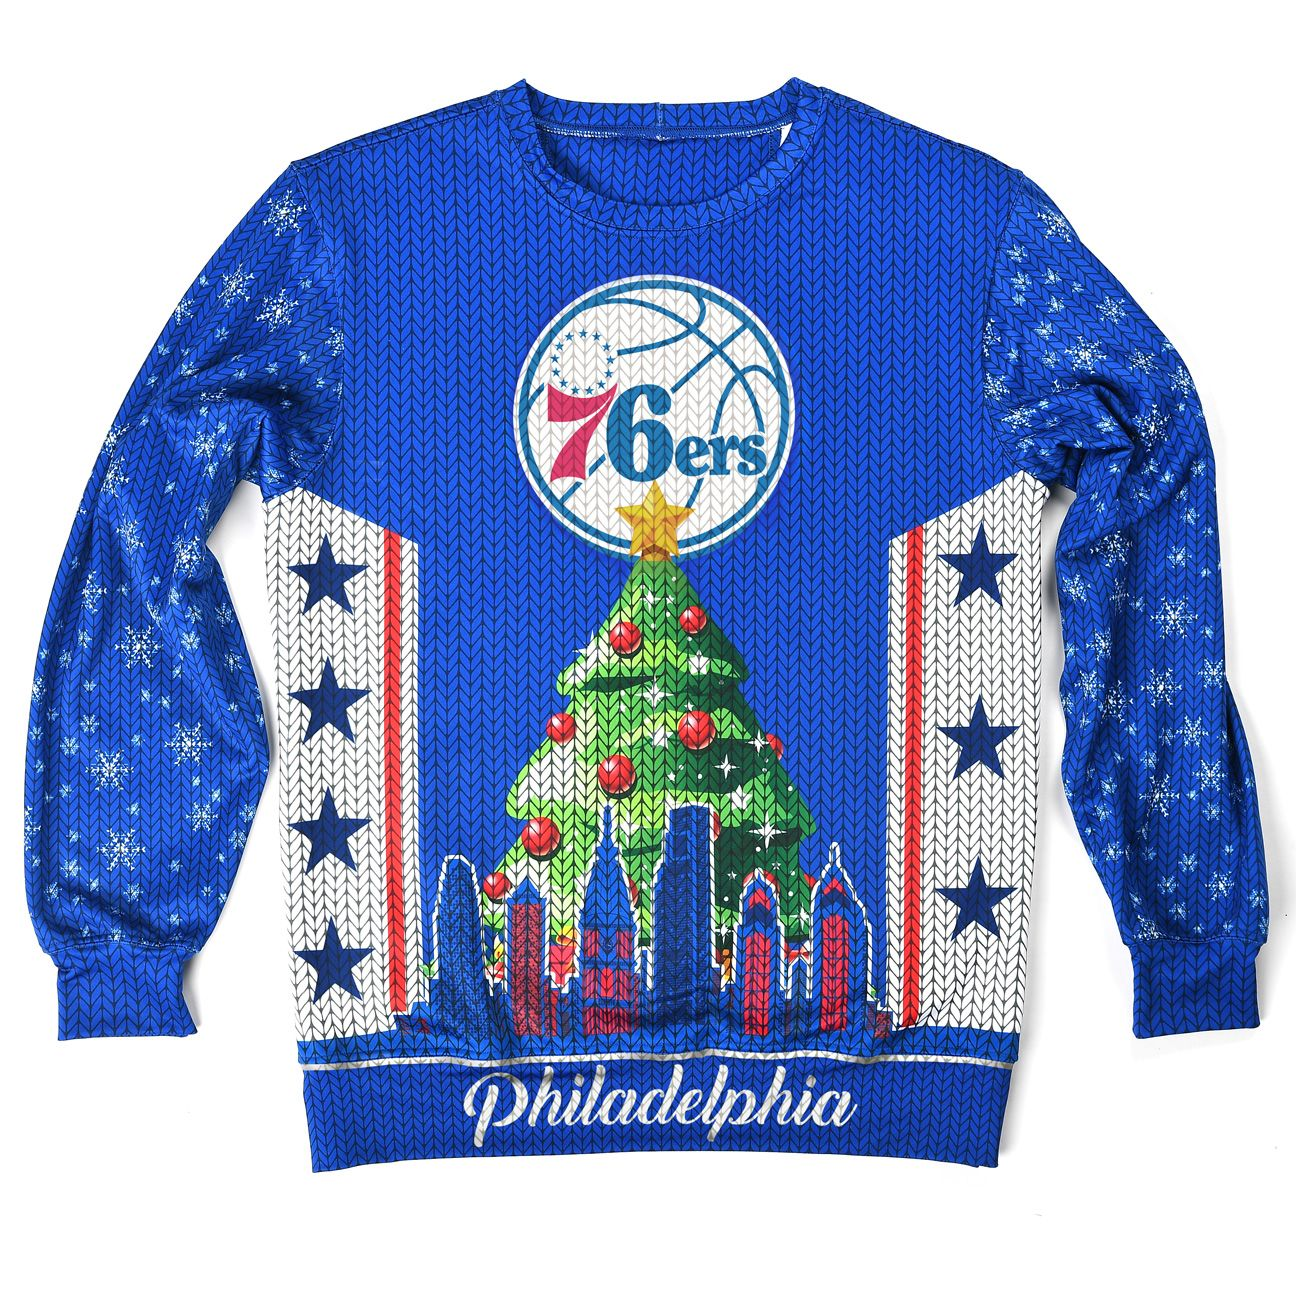 76ers ugly sweater